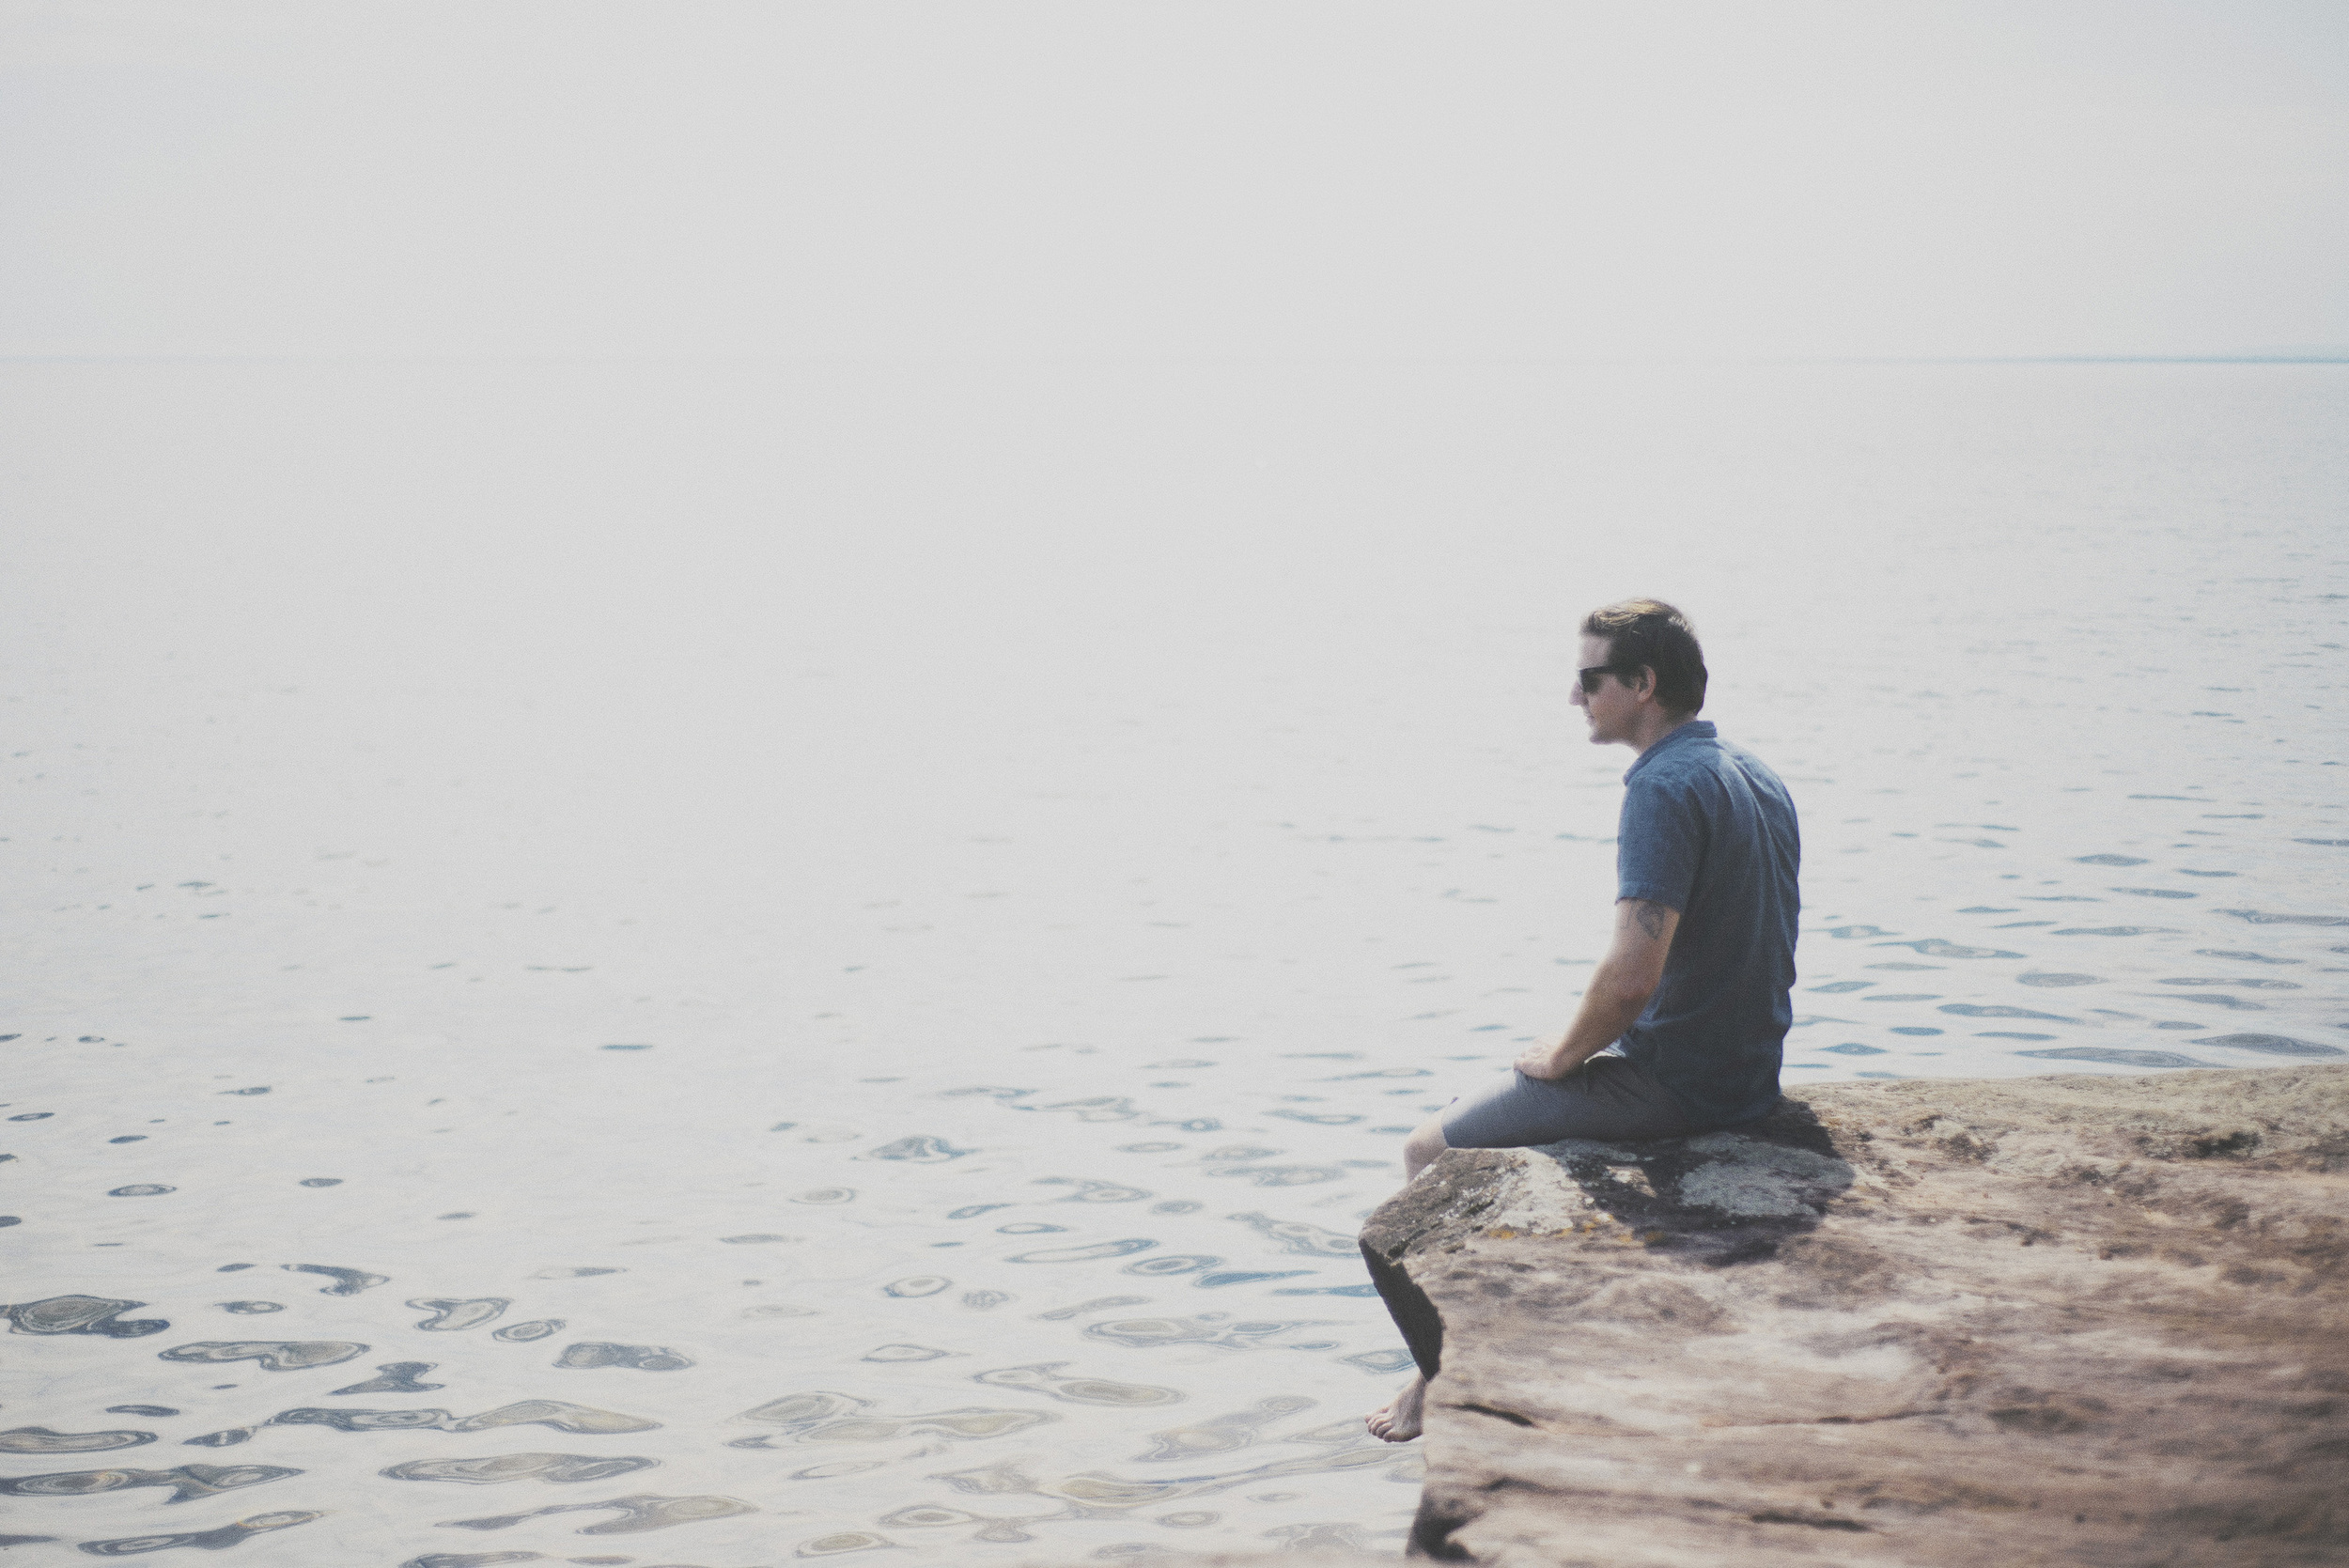 Our host, Joel, on Madeline Island. We had a picnic and drank champagne on these rocks. It was pretty epic. (: